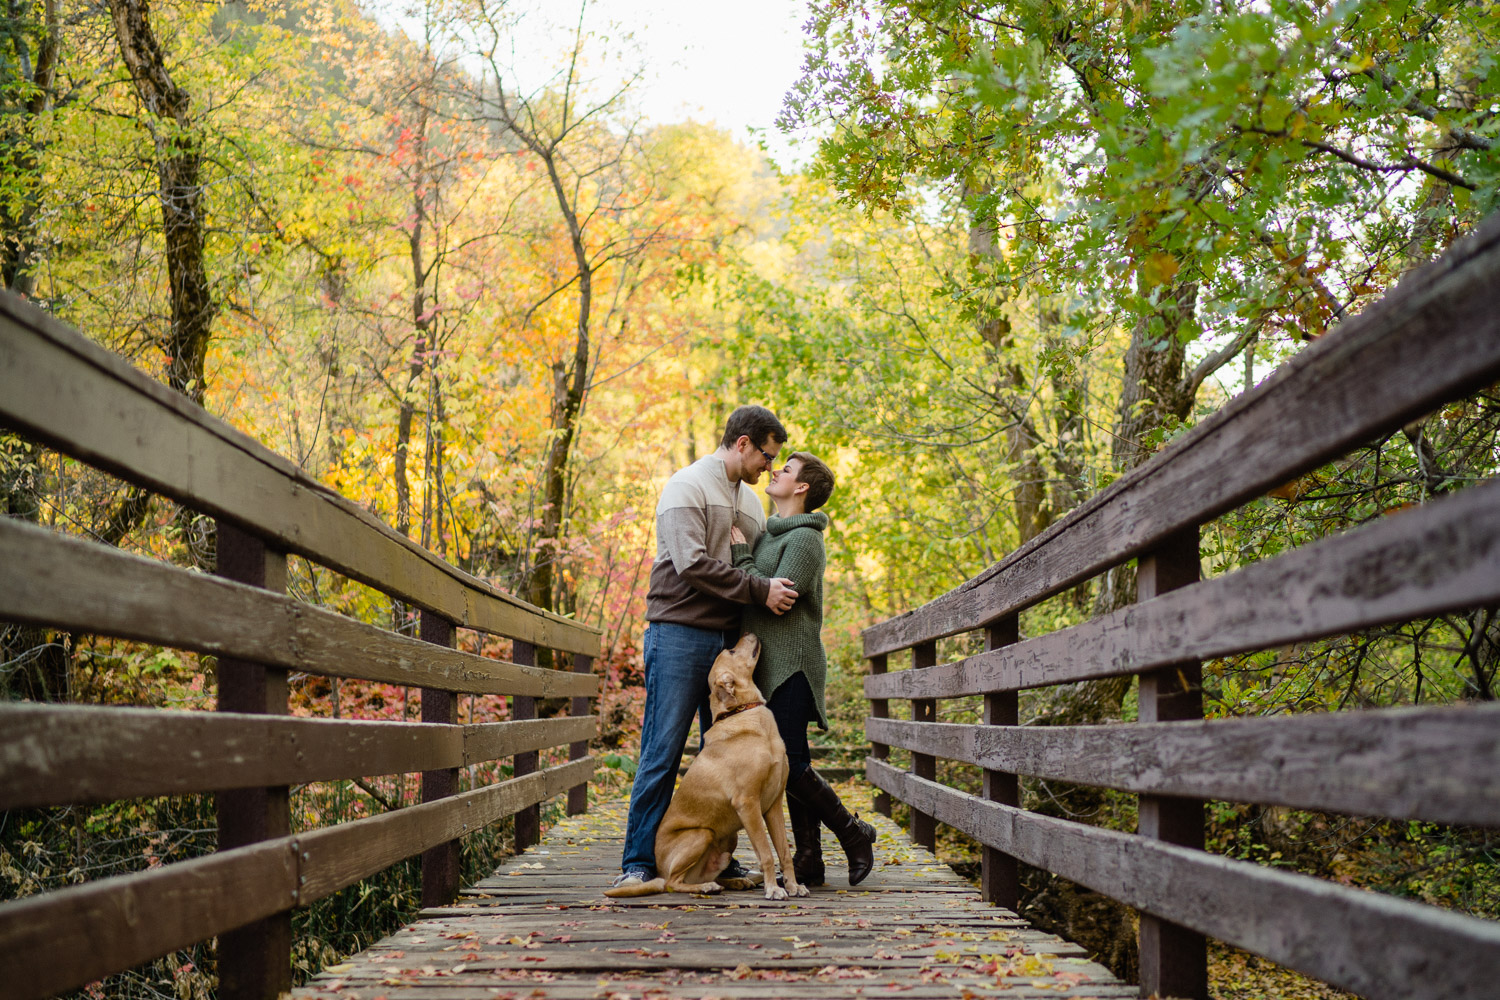 happy couple on bridge looking at each other with dog and trees